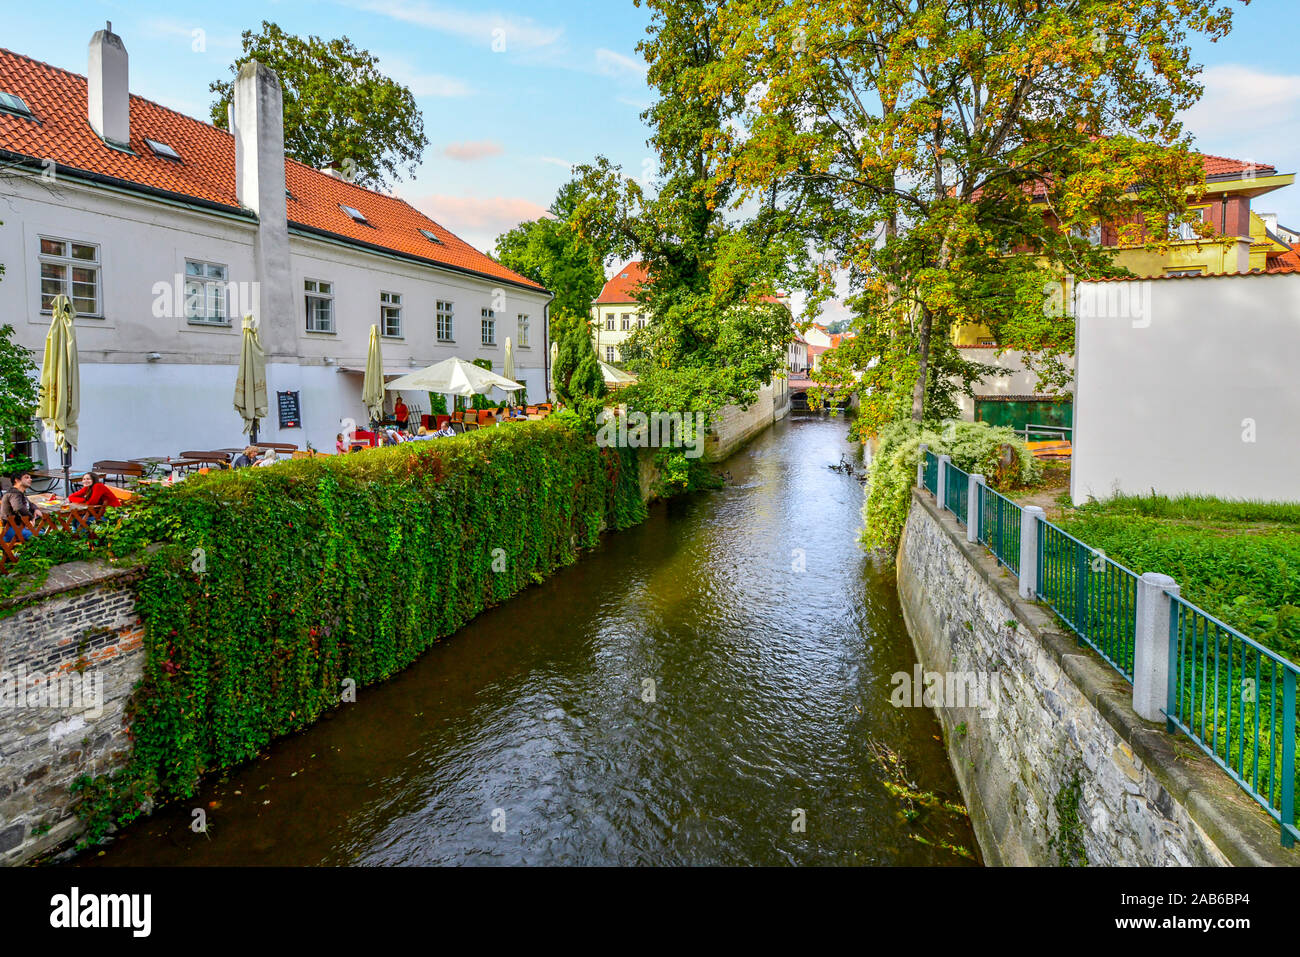 Tourists and locals dine at an outdoor cafe alongside a canal just off the river Vltava in the scenic area of Kampa Island in Prague, Czech Republic Stock Photo